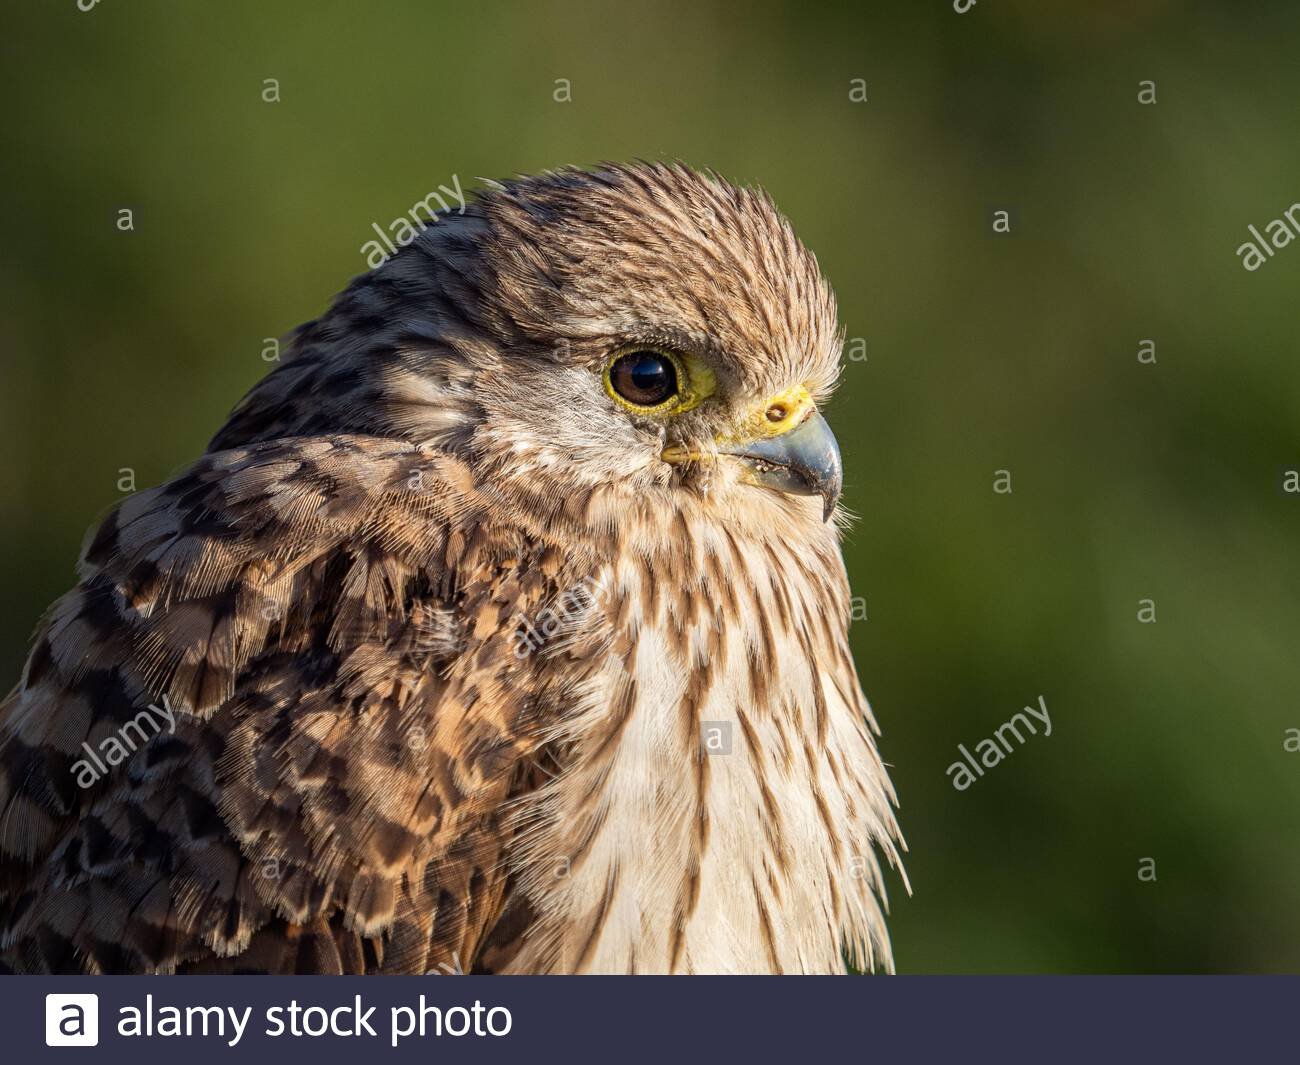 A common kestrel (Falco tinnunculus) in the Beddington Farmlands Nature Reserve, Sutton, London. Stock Photo